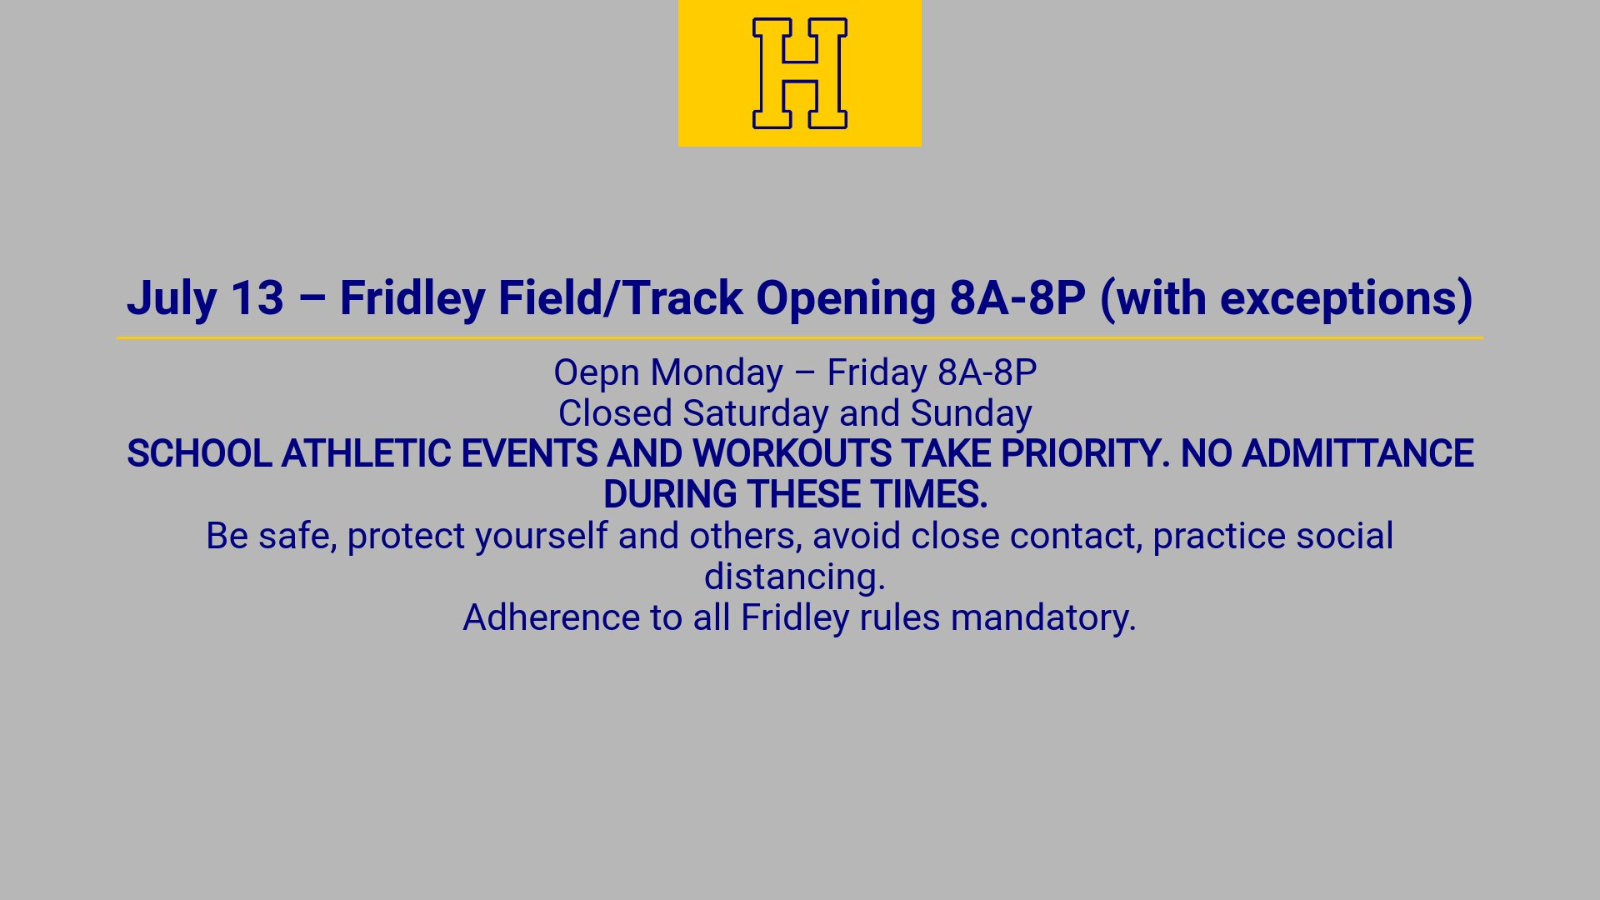 July 13th Fridley/Track Opening